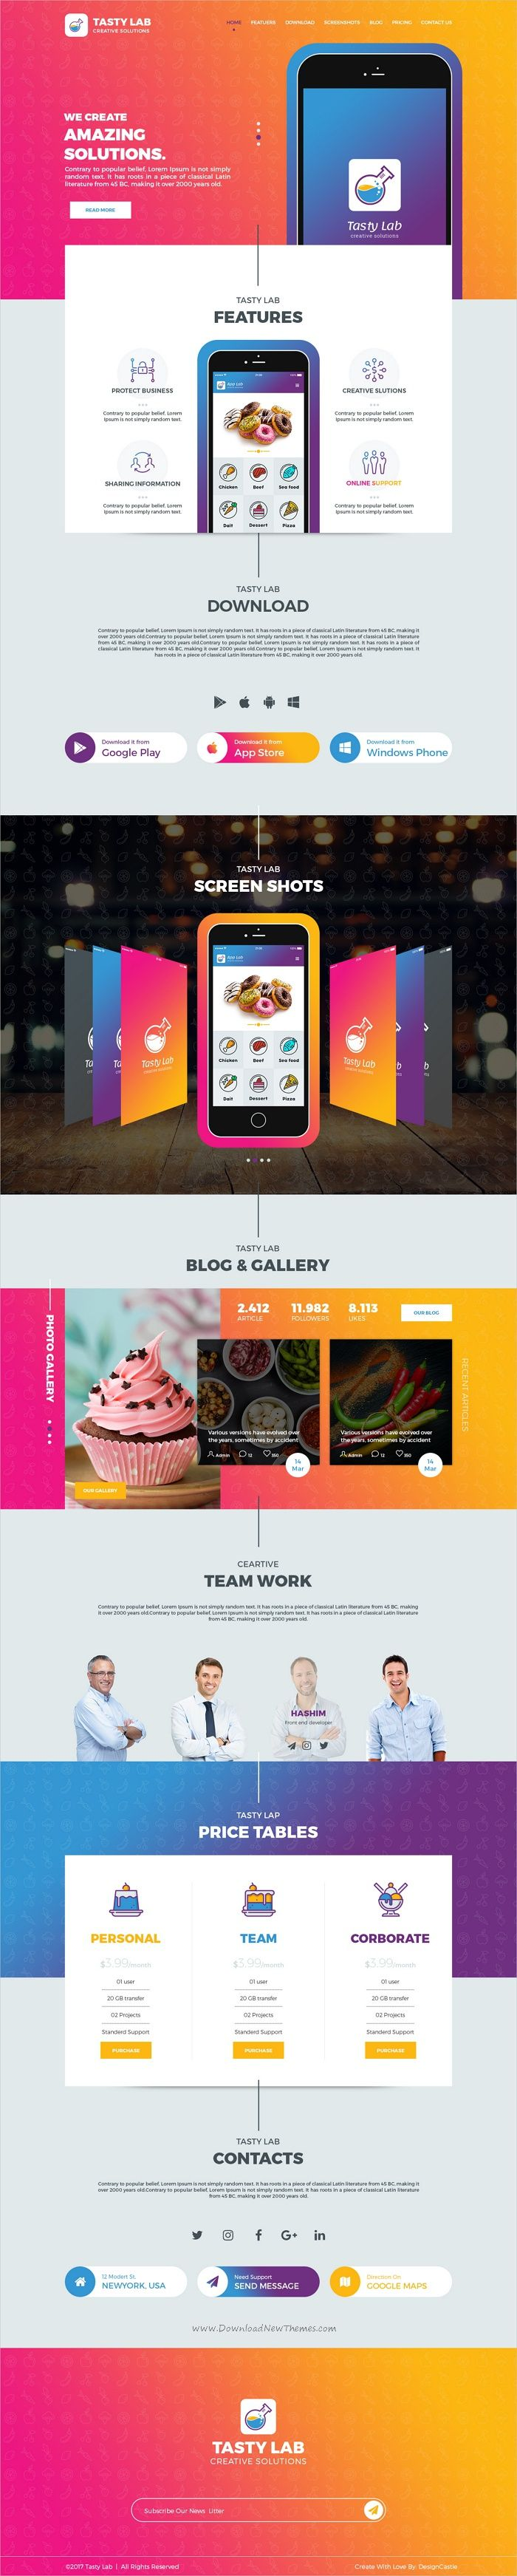 TastyLab is a clean and creative design #Photoshop #template for mobile #application landing page website download now➩ https://themeforest.net/item/tastylab-mobile-application-landing-page/19588825?ref=Datasata